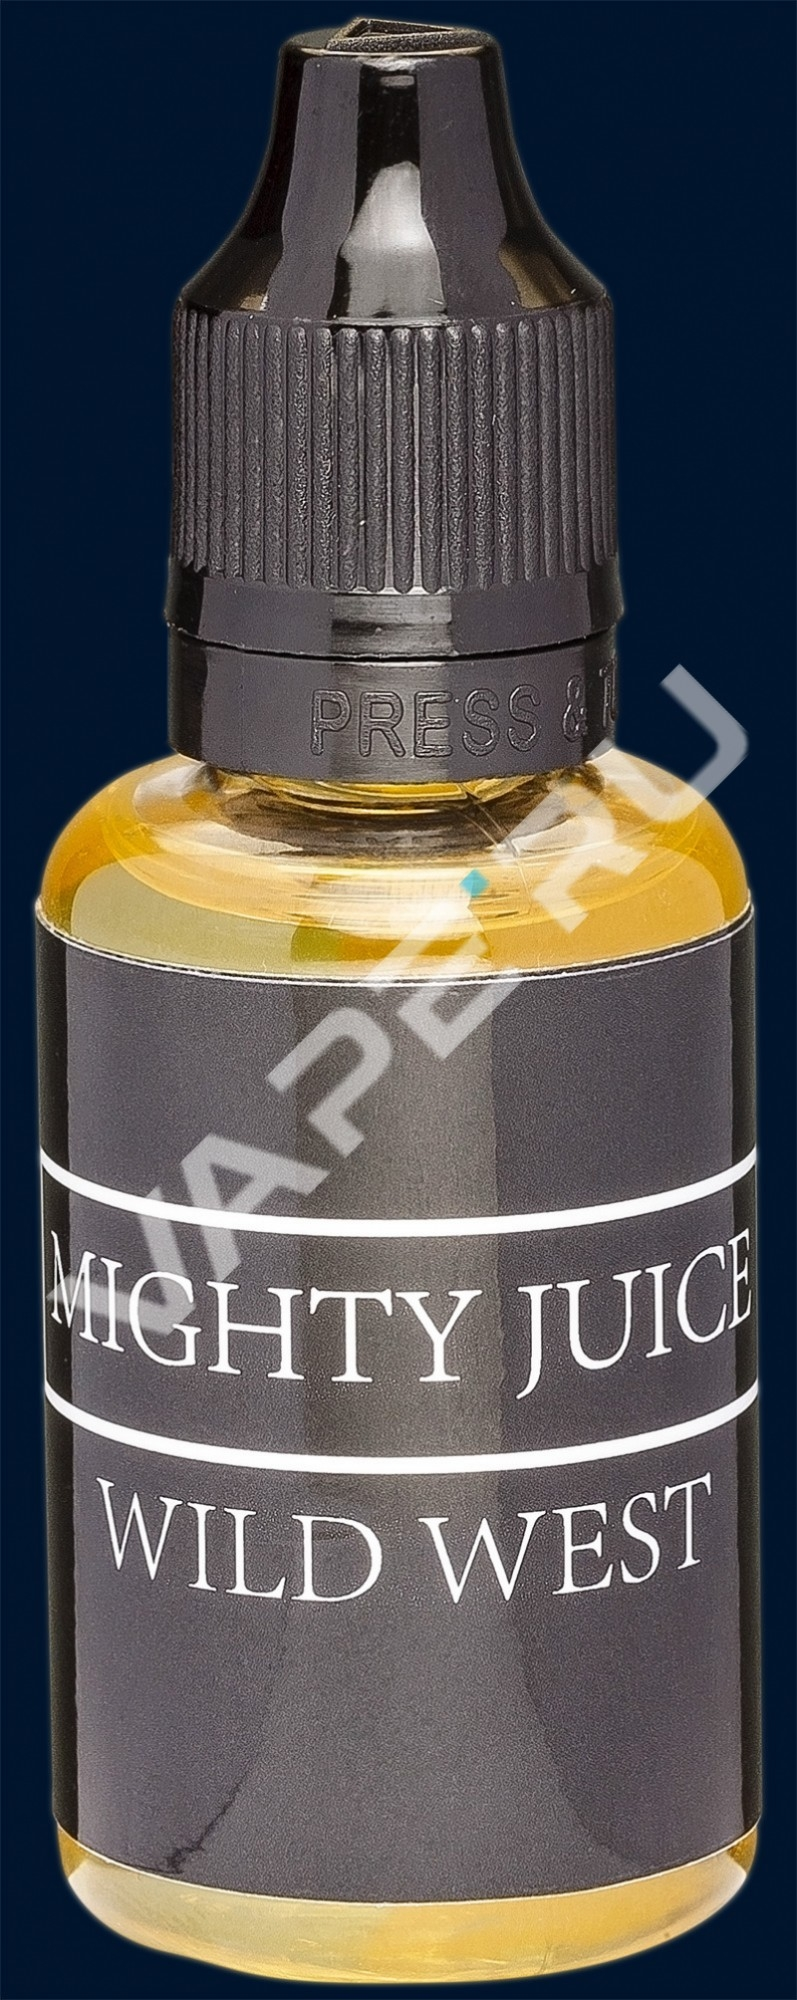 Mighty juice, Wild West